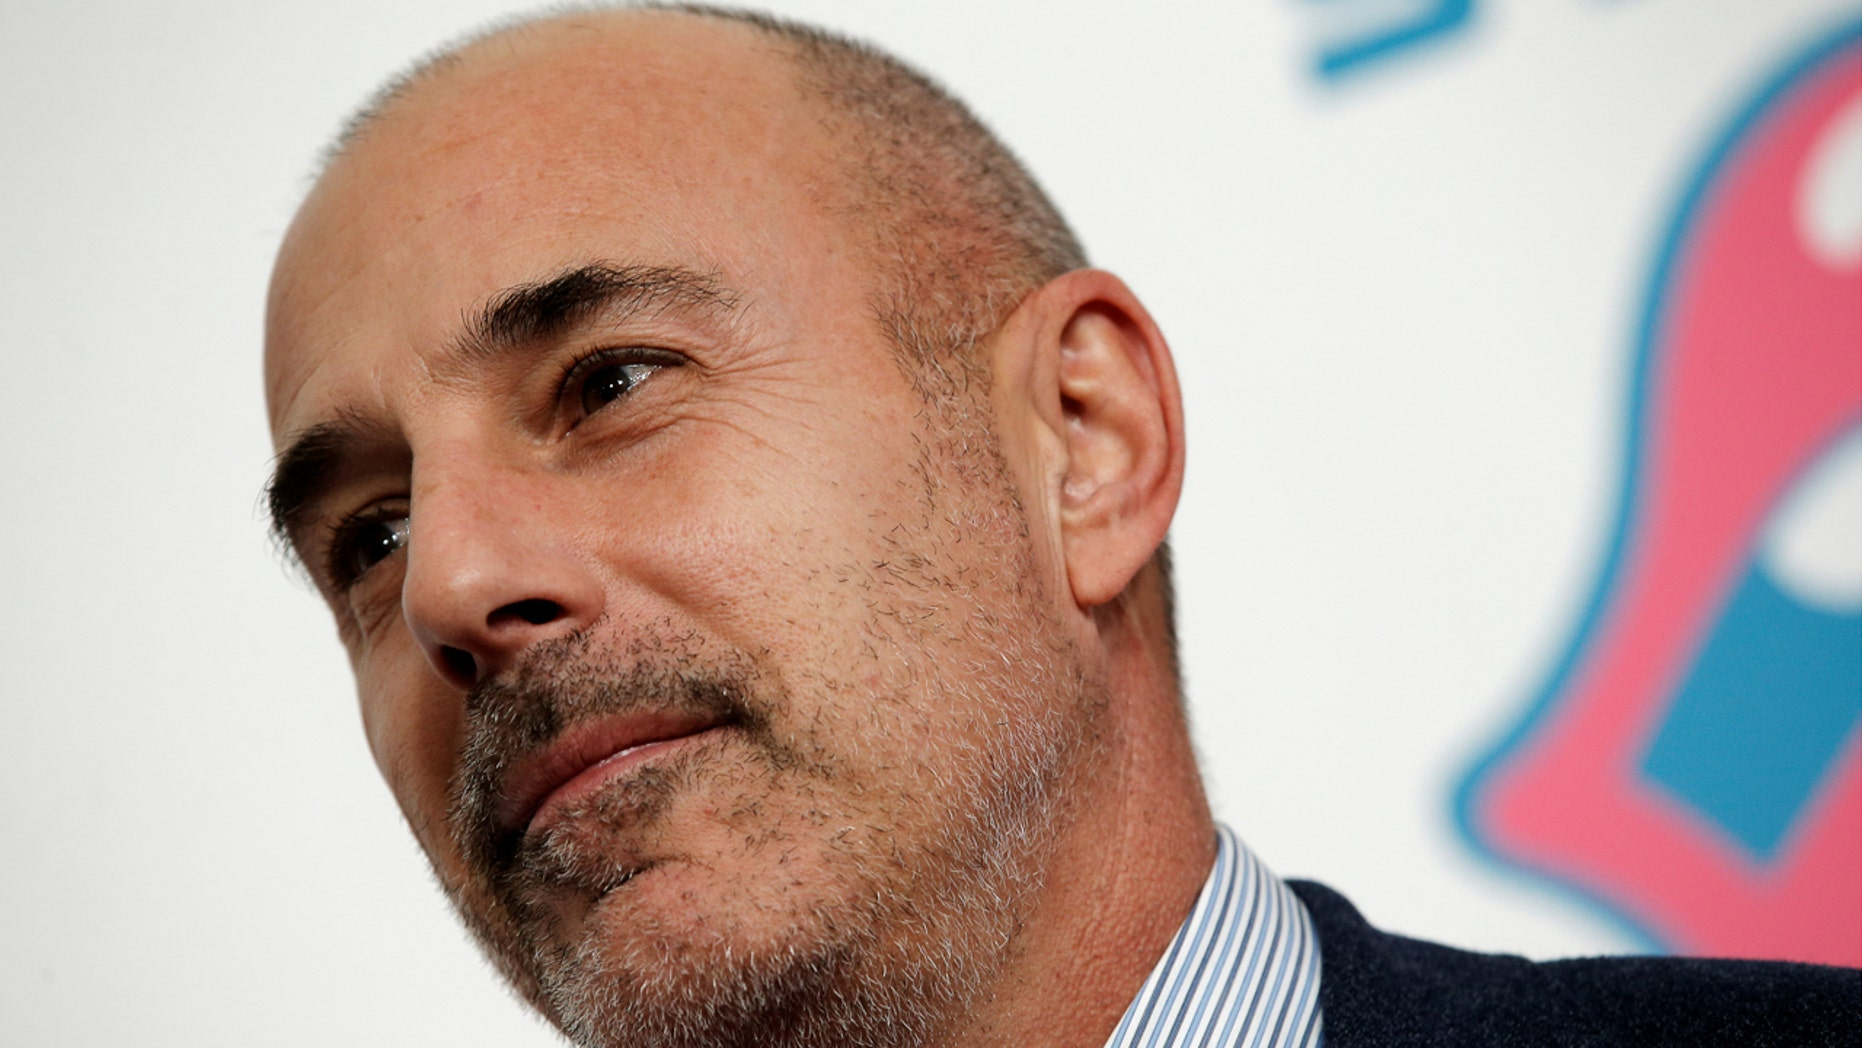 NBC scrubbed all promotional images of Matt Lauer from its 'Today' show website and social media pages Wednesday